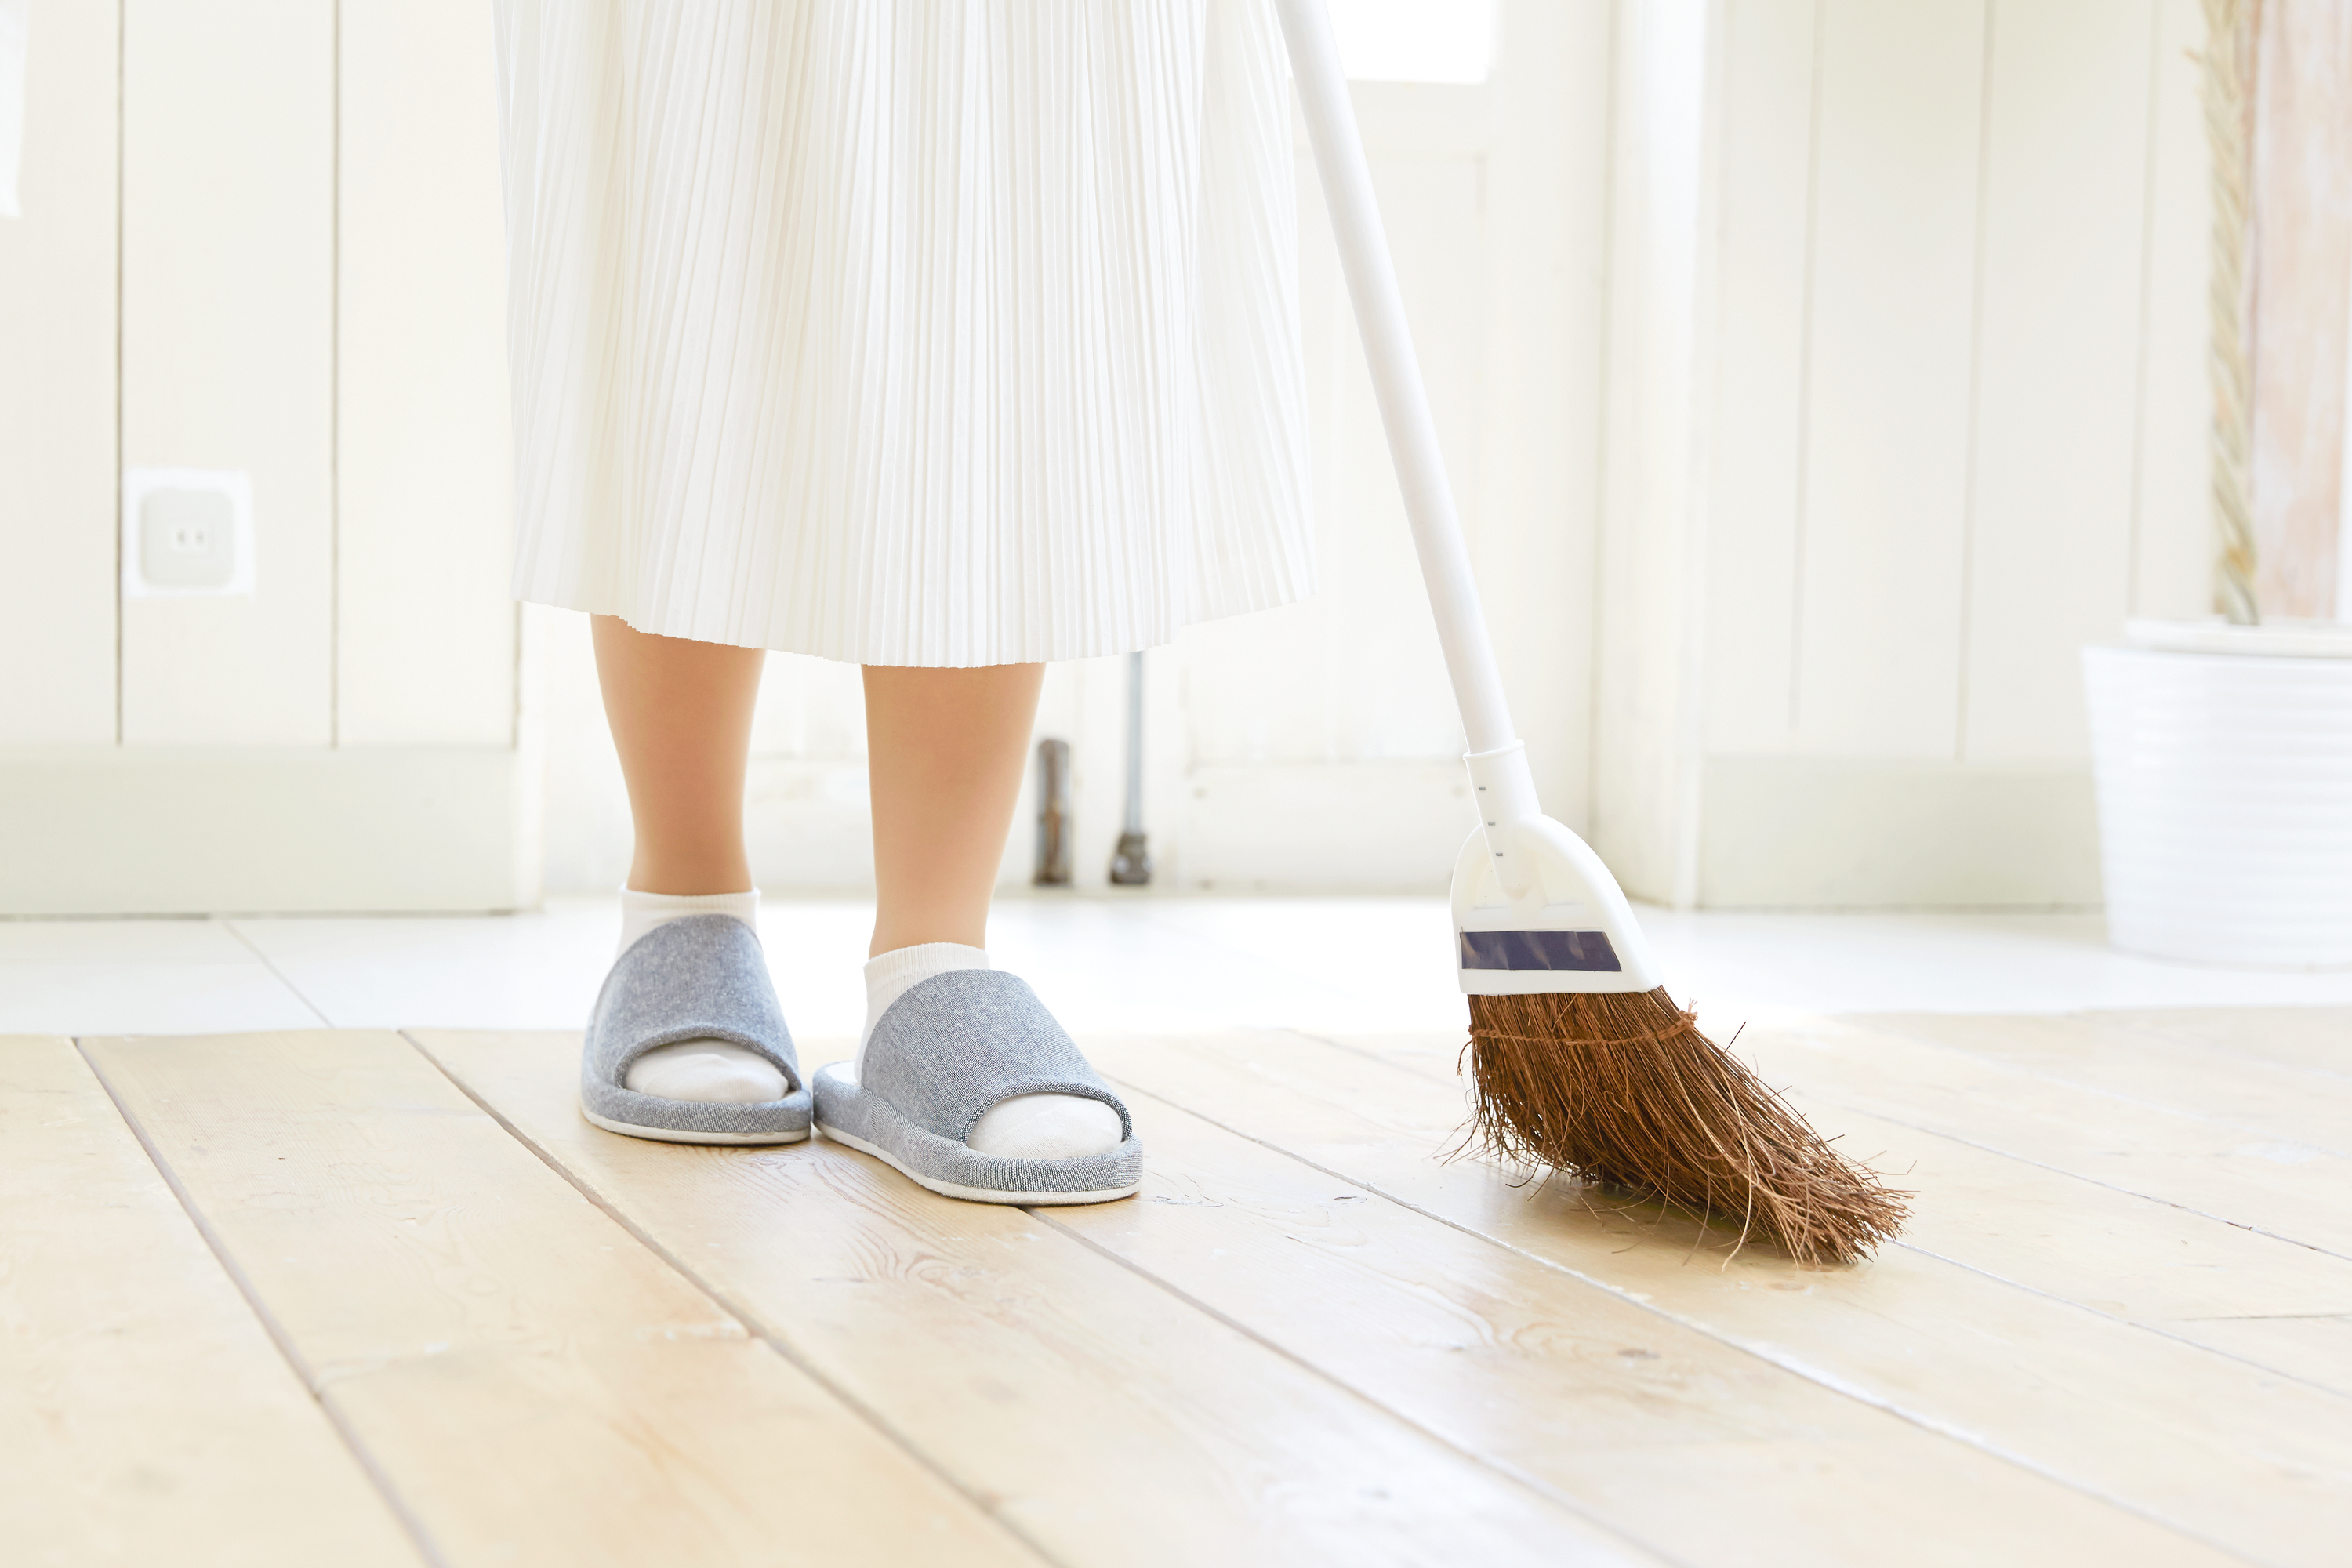 Chinese New Year - Don't sweep the floor